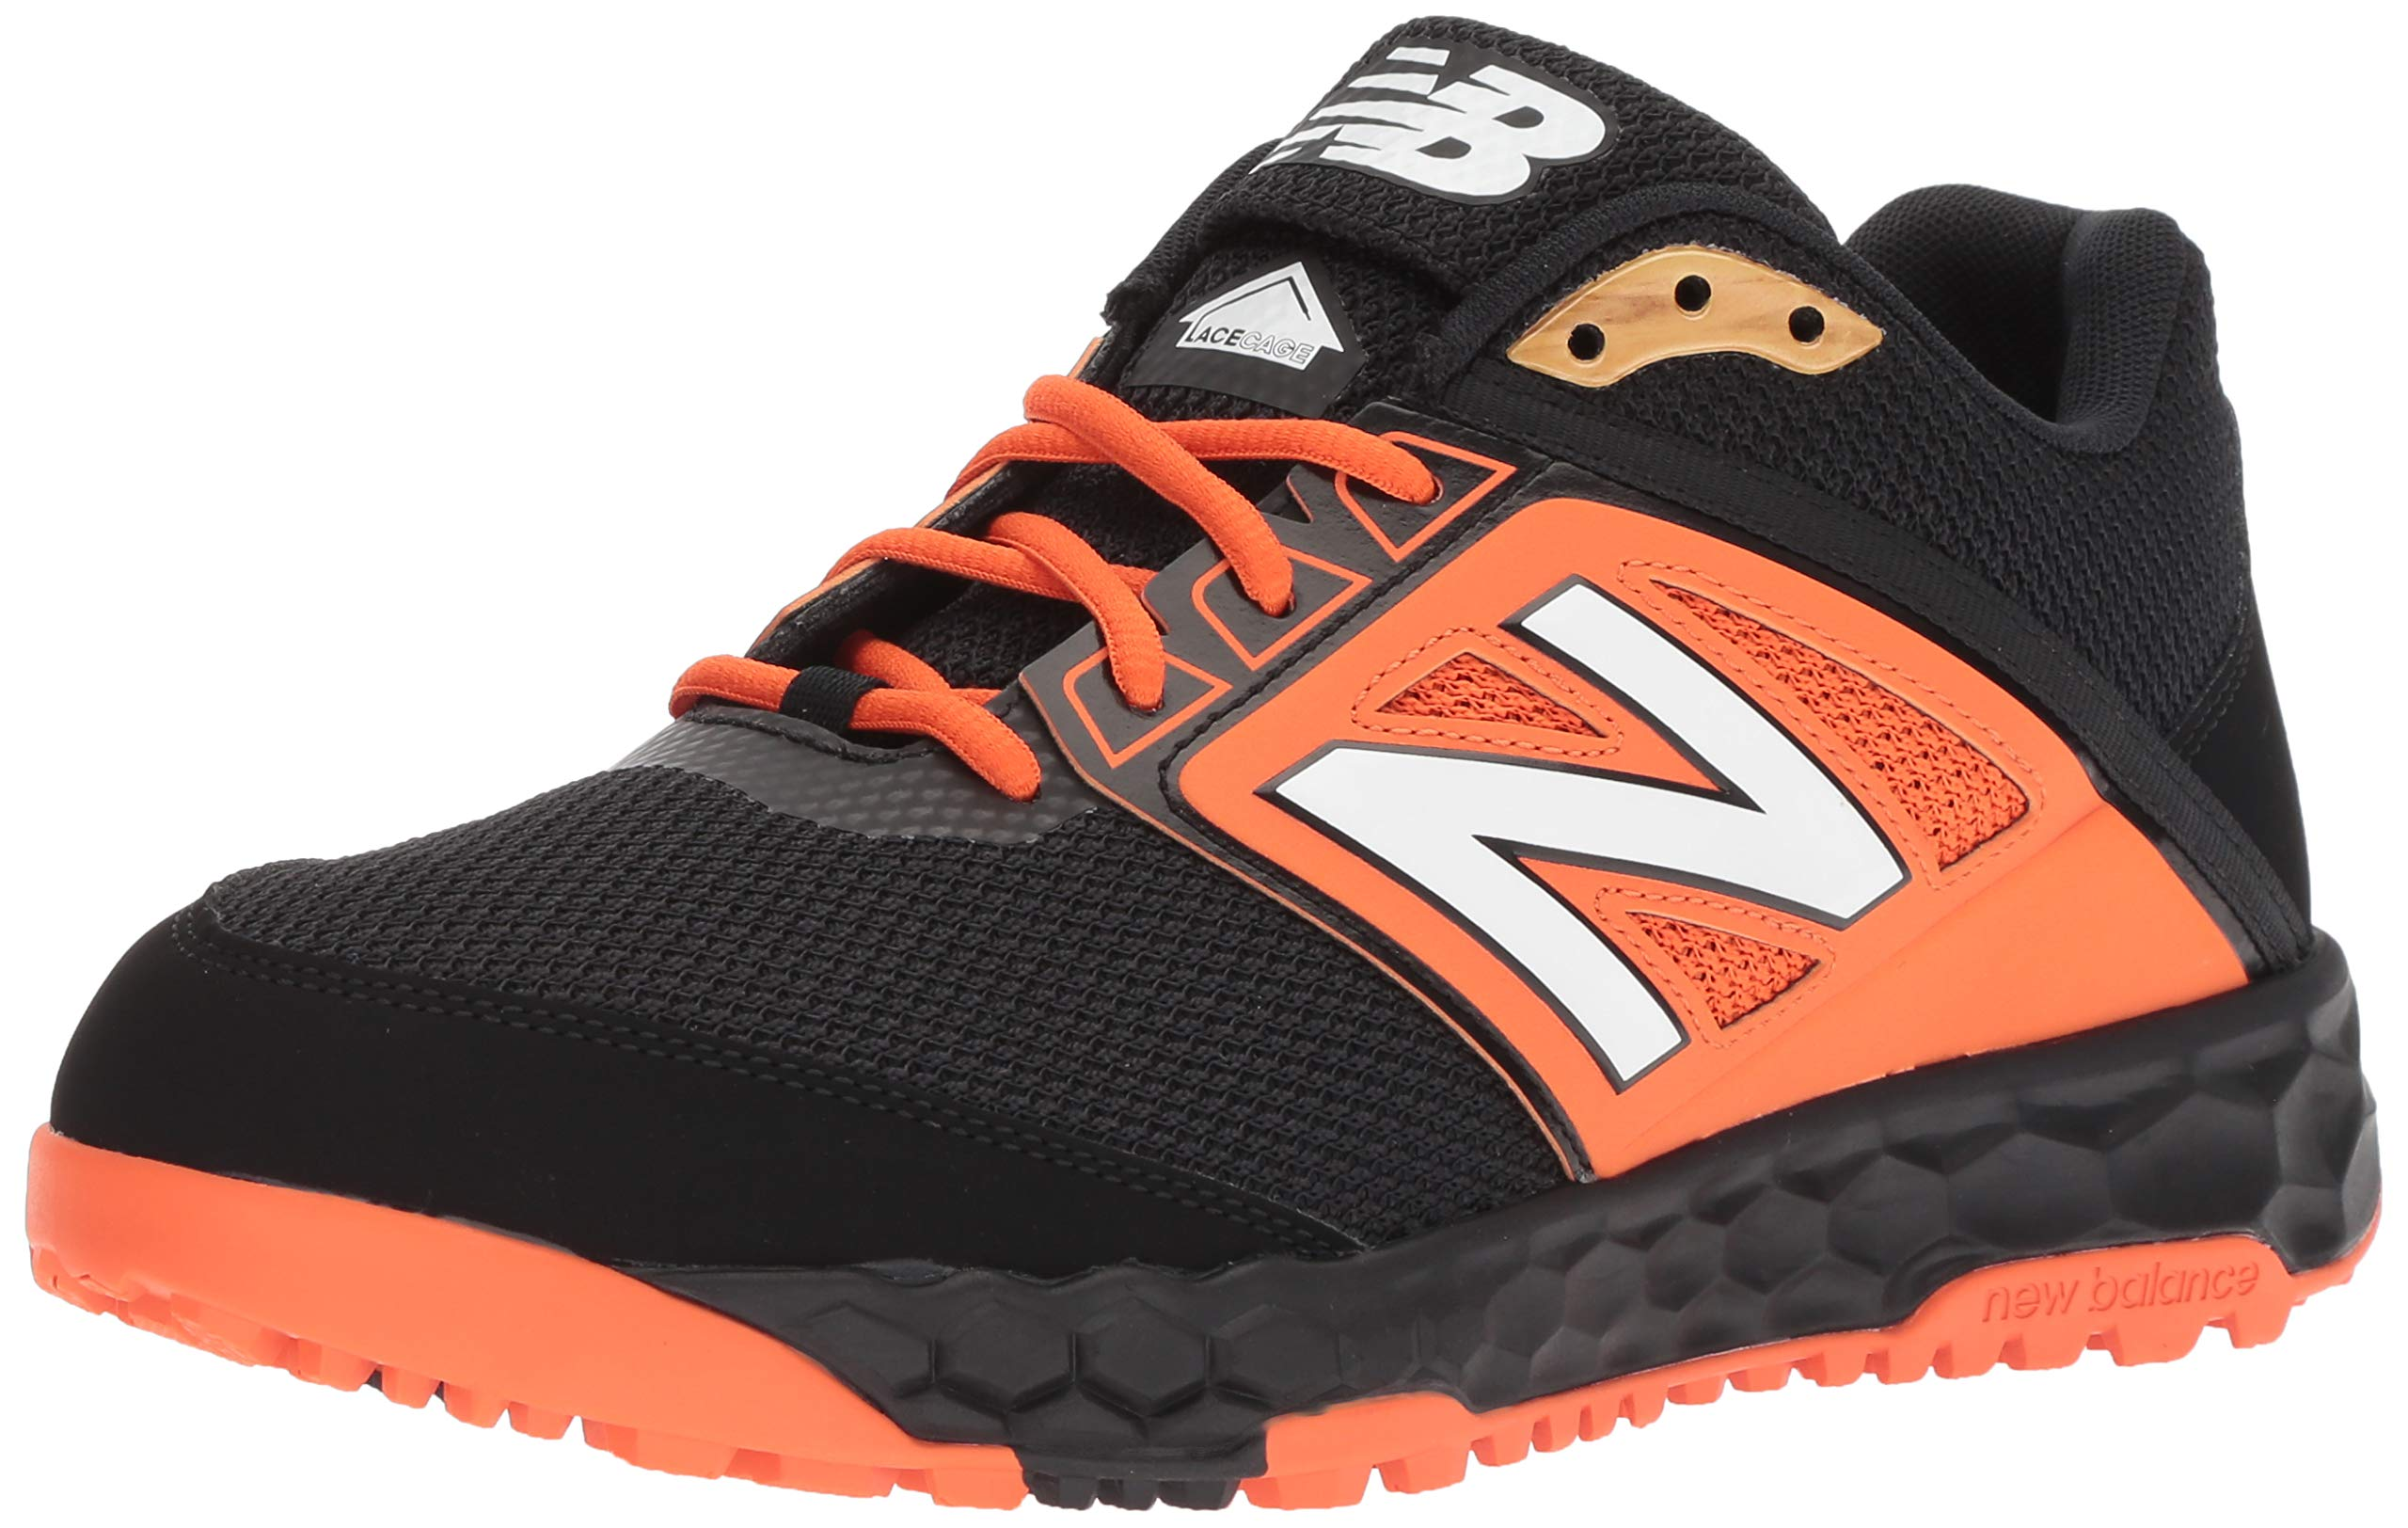 New Balance Men's 3000v4 Turf Baseball Shoe, Black/Orange, 5 D US